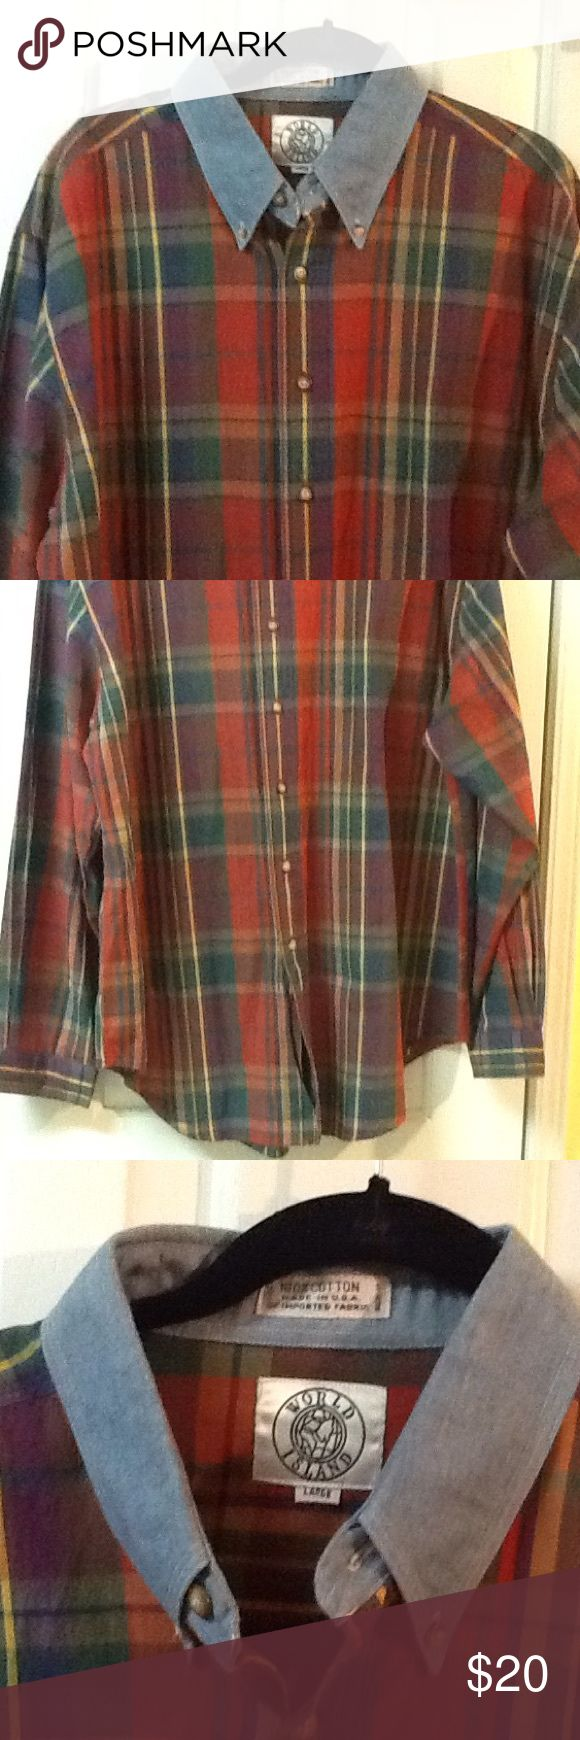 Men's Plaid Size L Long Sleeve Shirt Men's size large cotton preppy plaid button down shirt. By World Island. Made in USA. Contrasting collar. In great condition. Green, red, yellow and orange. World Island Shirts Casual Button Down Shirts